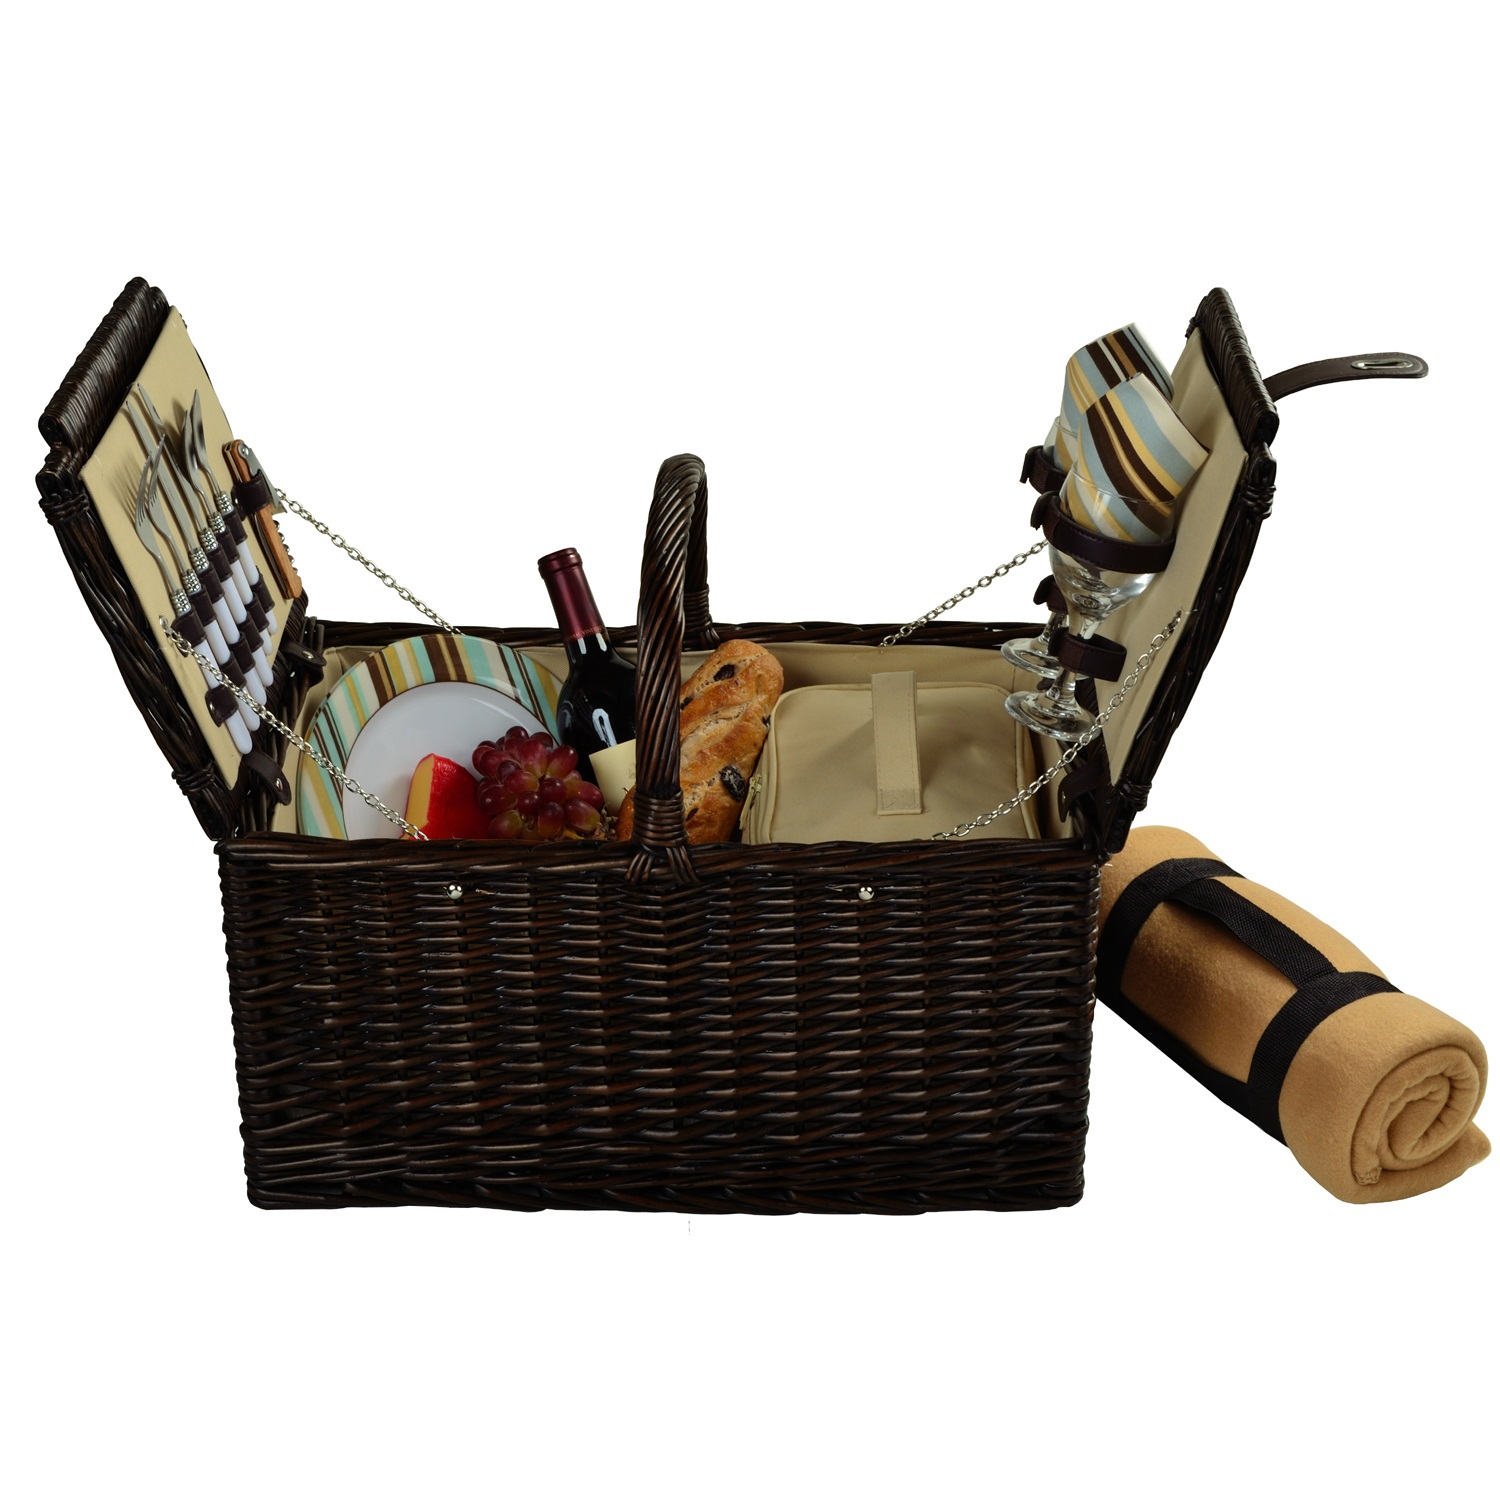 Myer Wicker Picnic Basket : Picnic at ascot surrey basket for w blanket